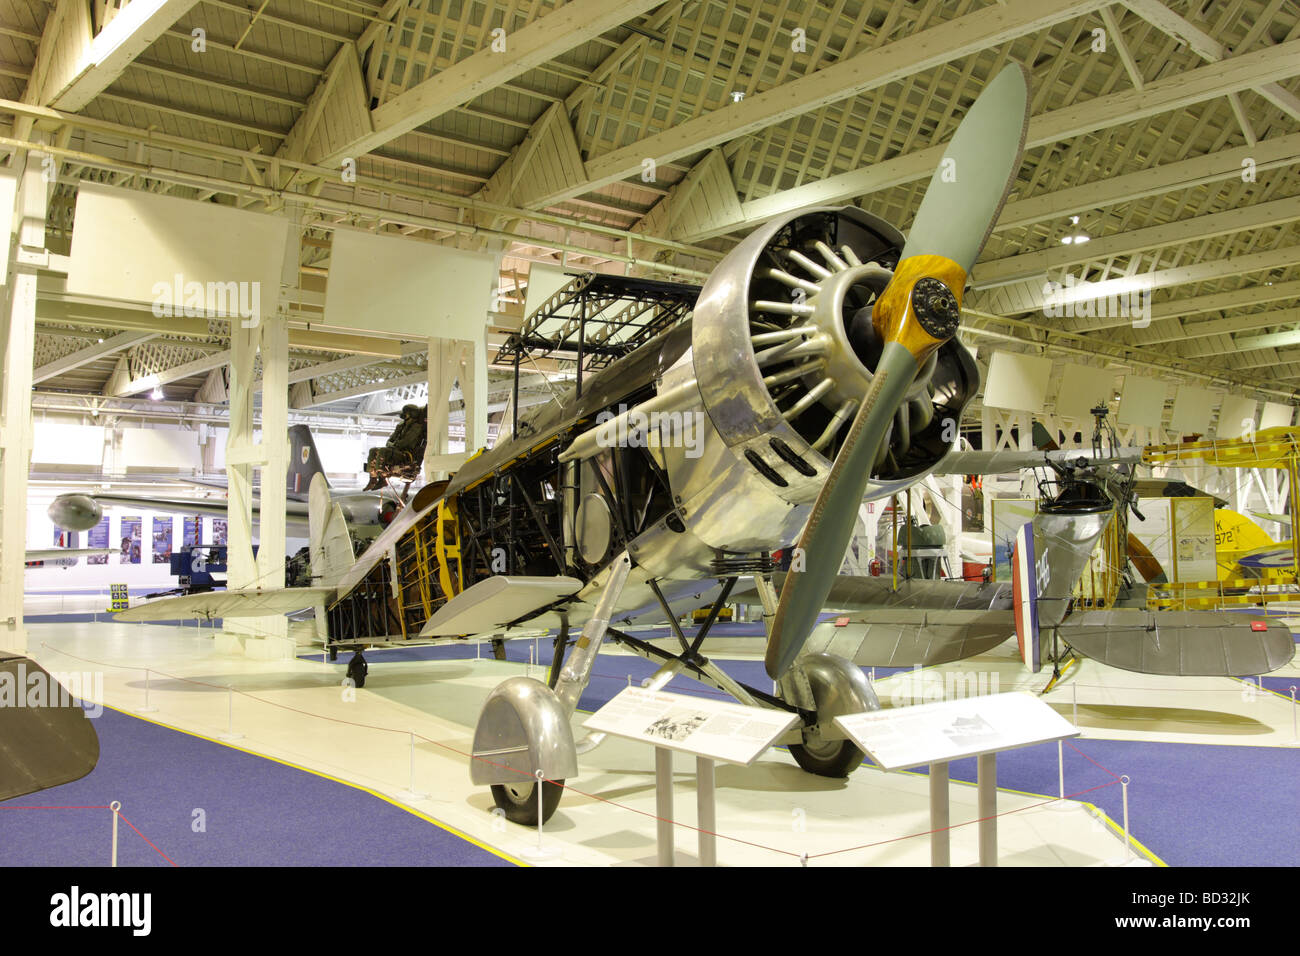 Fuselage of the Westland Wallace currently on display at the Historic Hangars Exhibition,RAF Hendon,London,England. - Stock Image